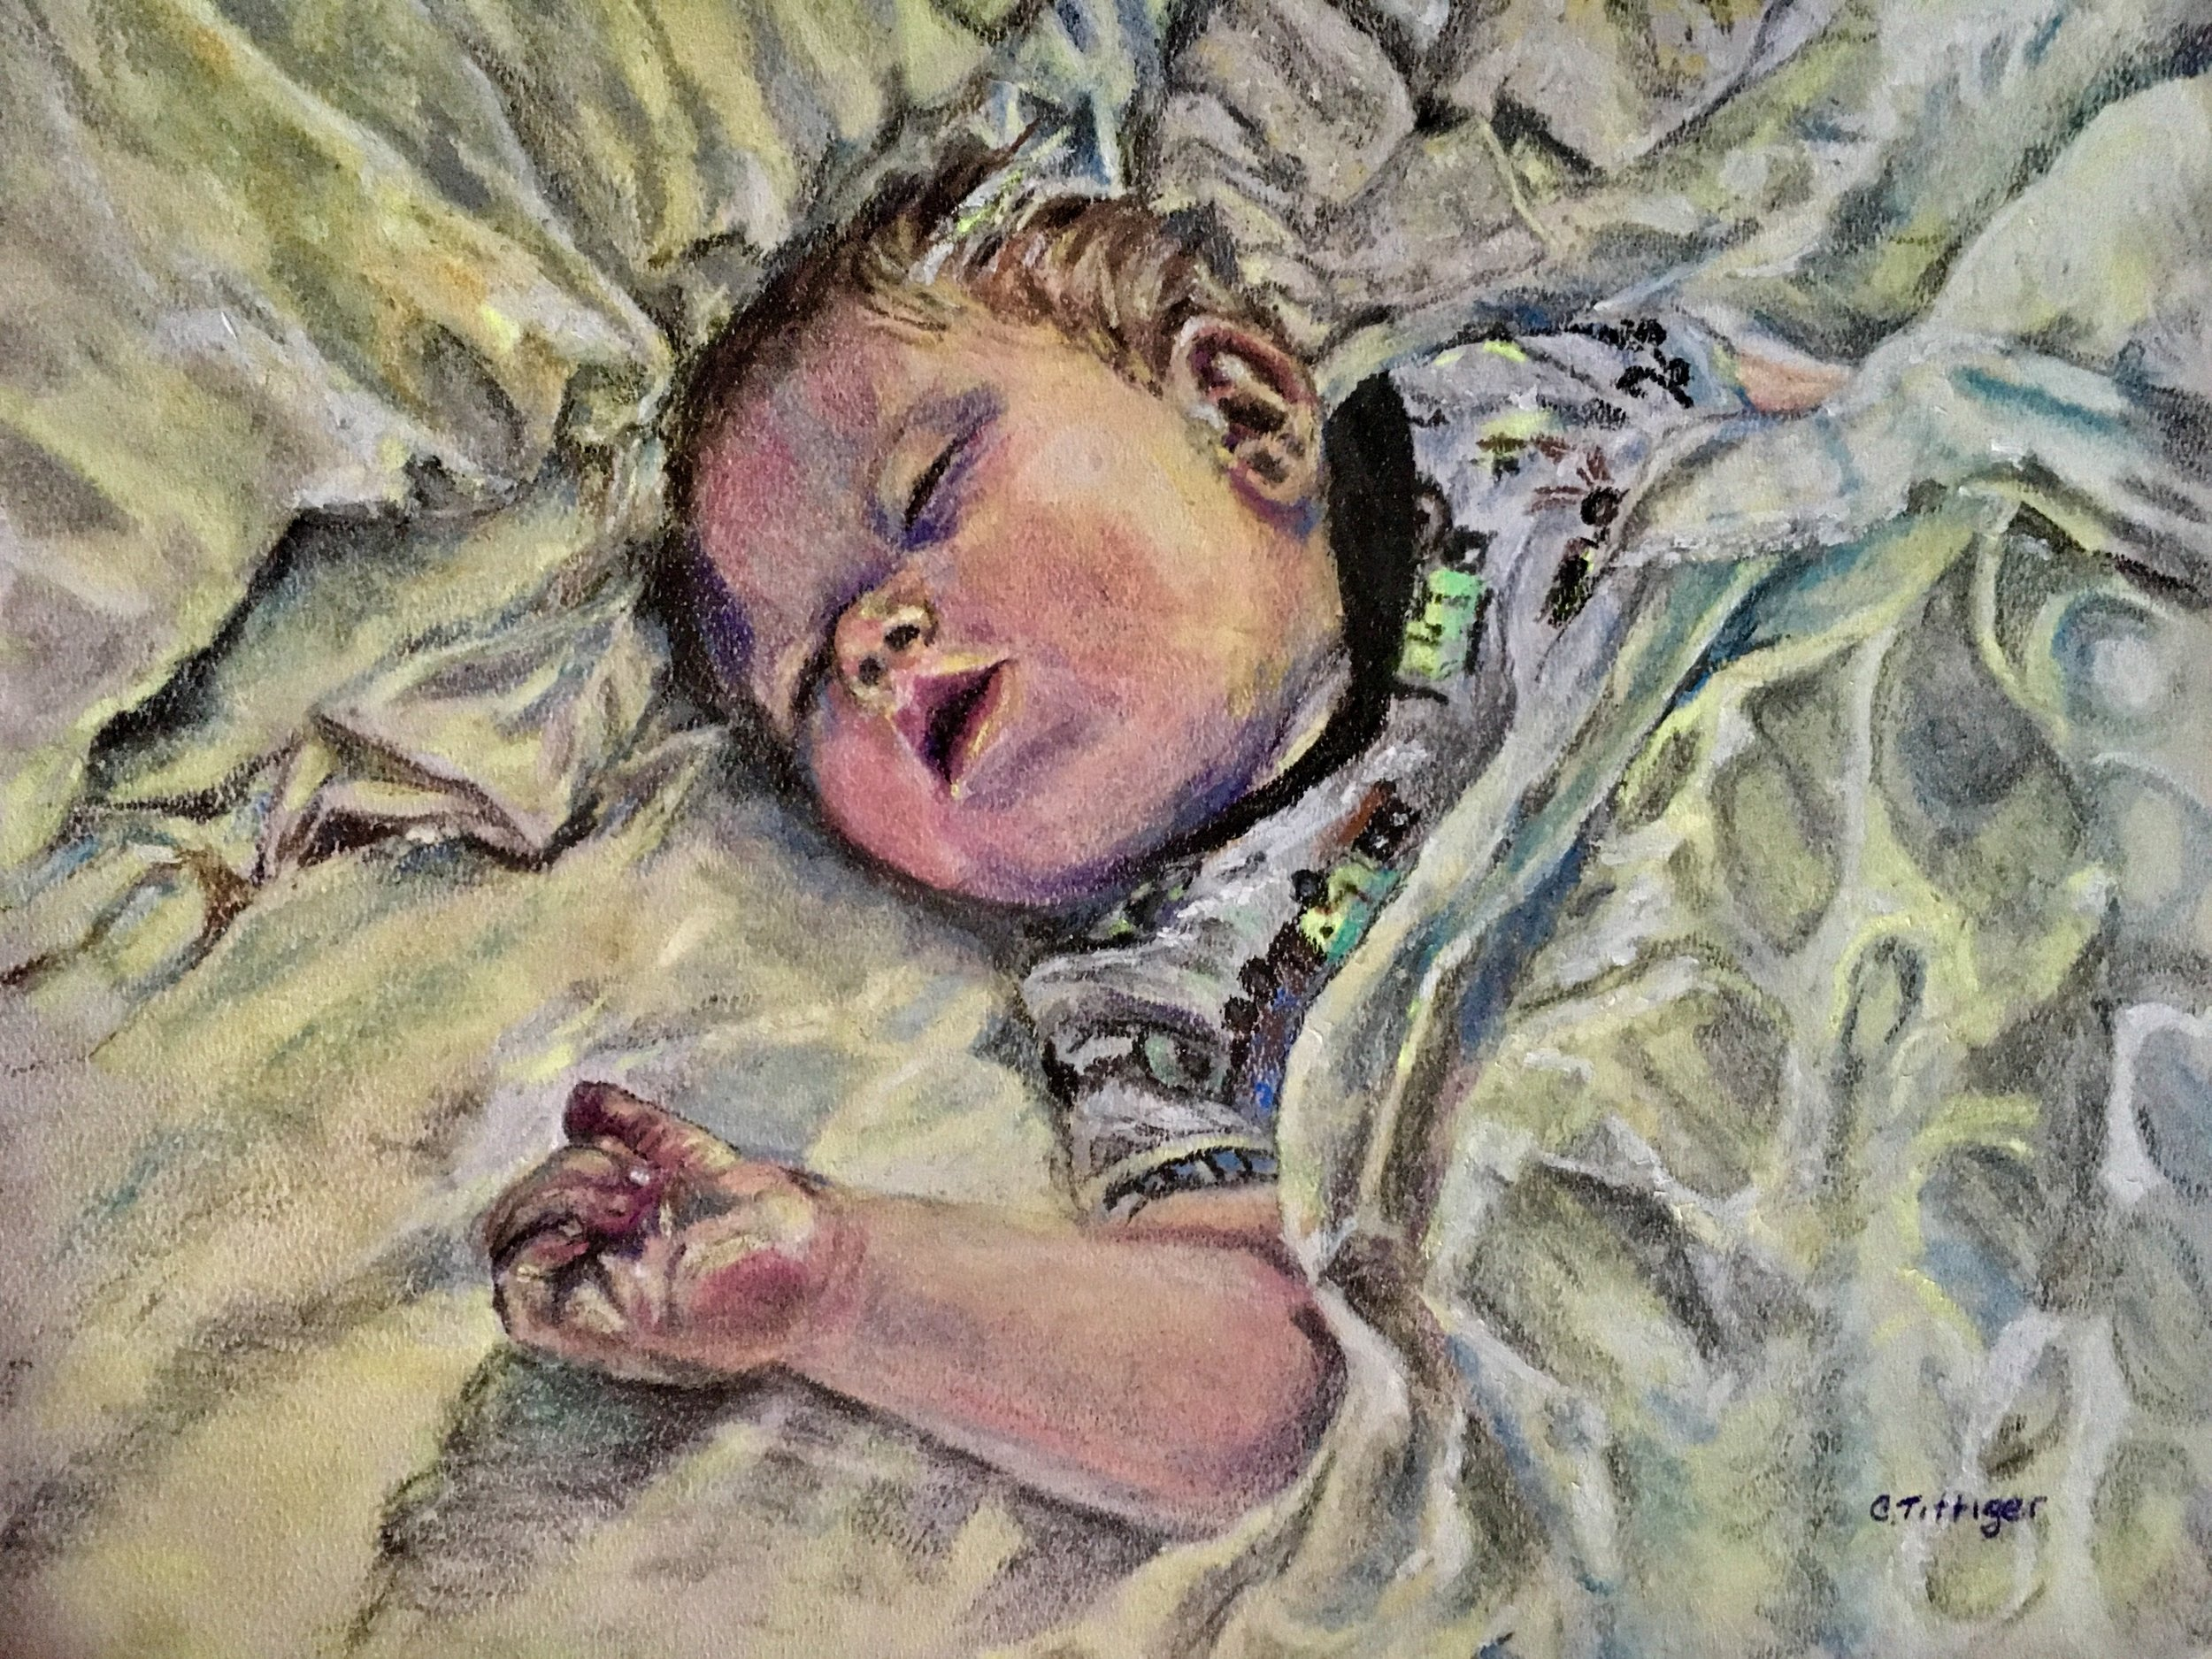 GIDEON   This is a pastel painting of my great nephew. He had too much of an amusement park that day. I complete pastel paintings by commission.